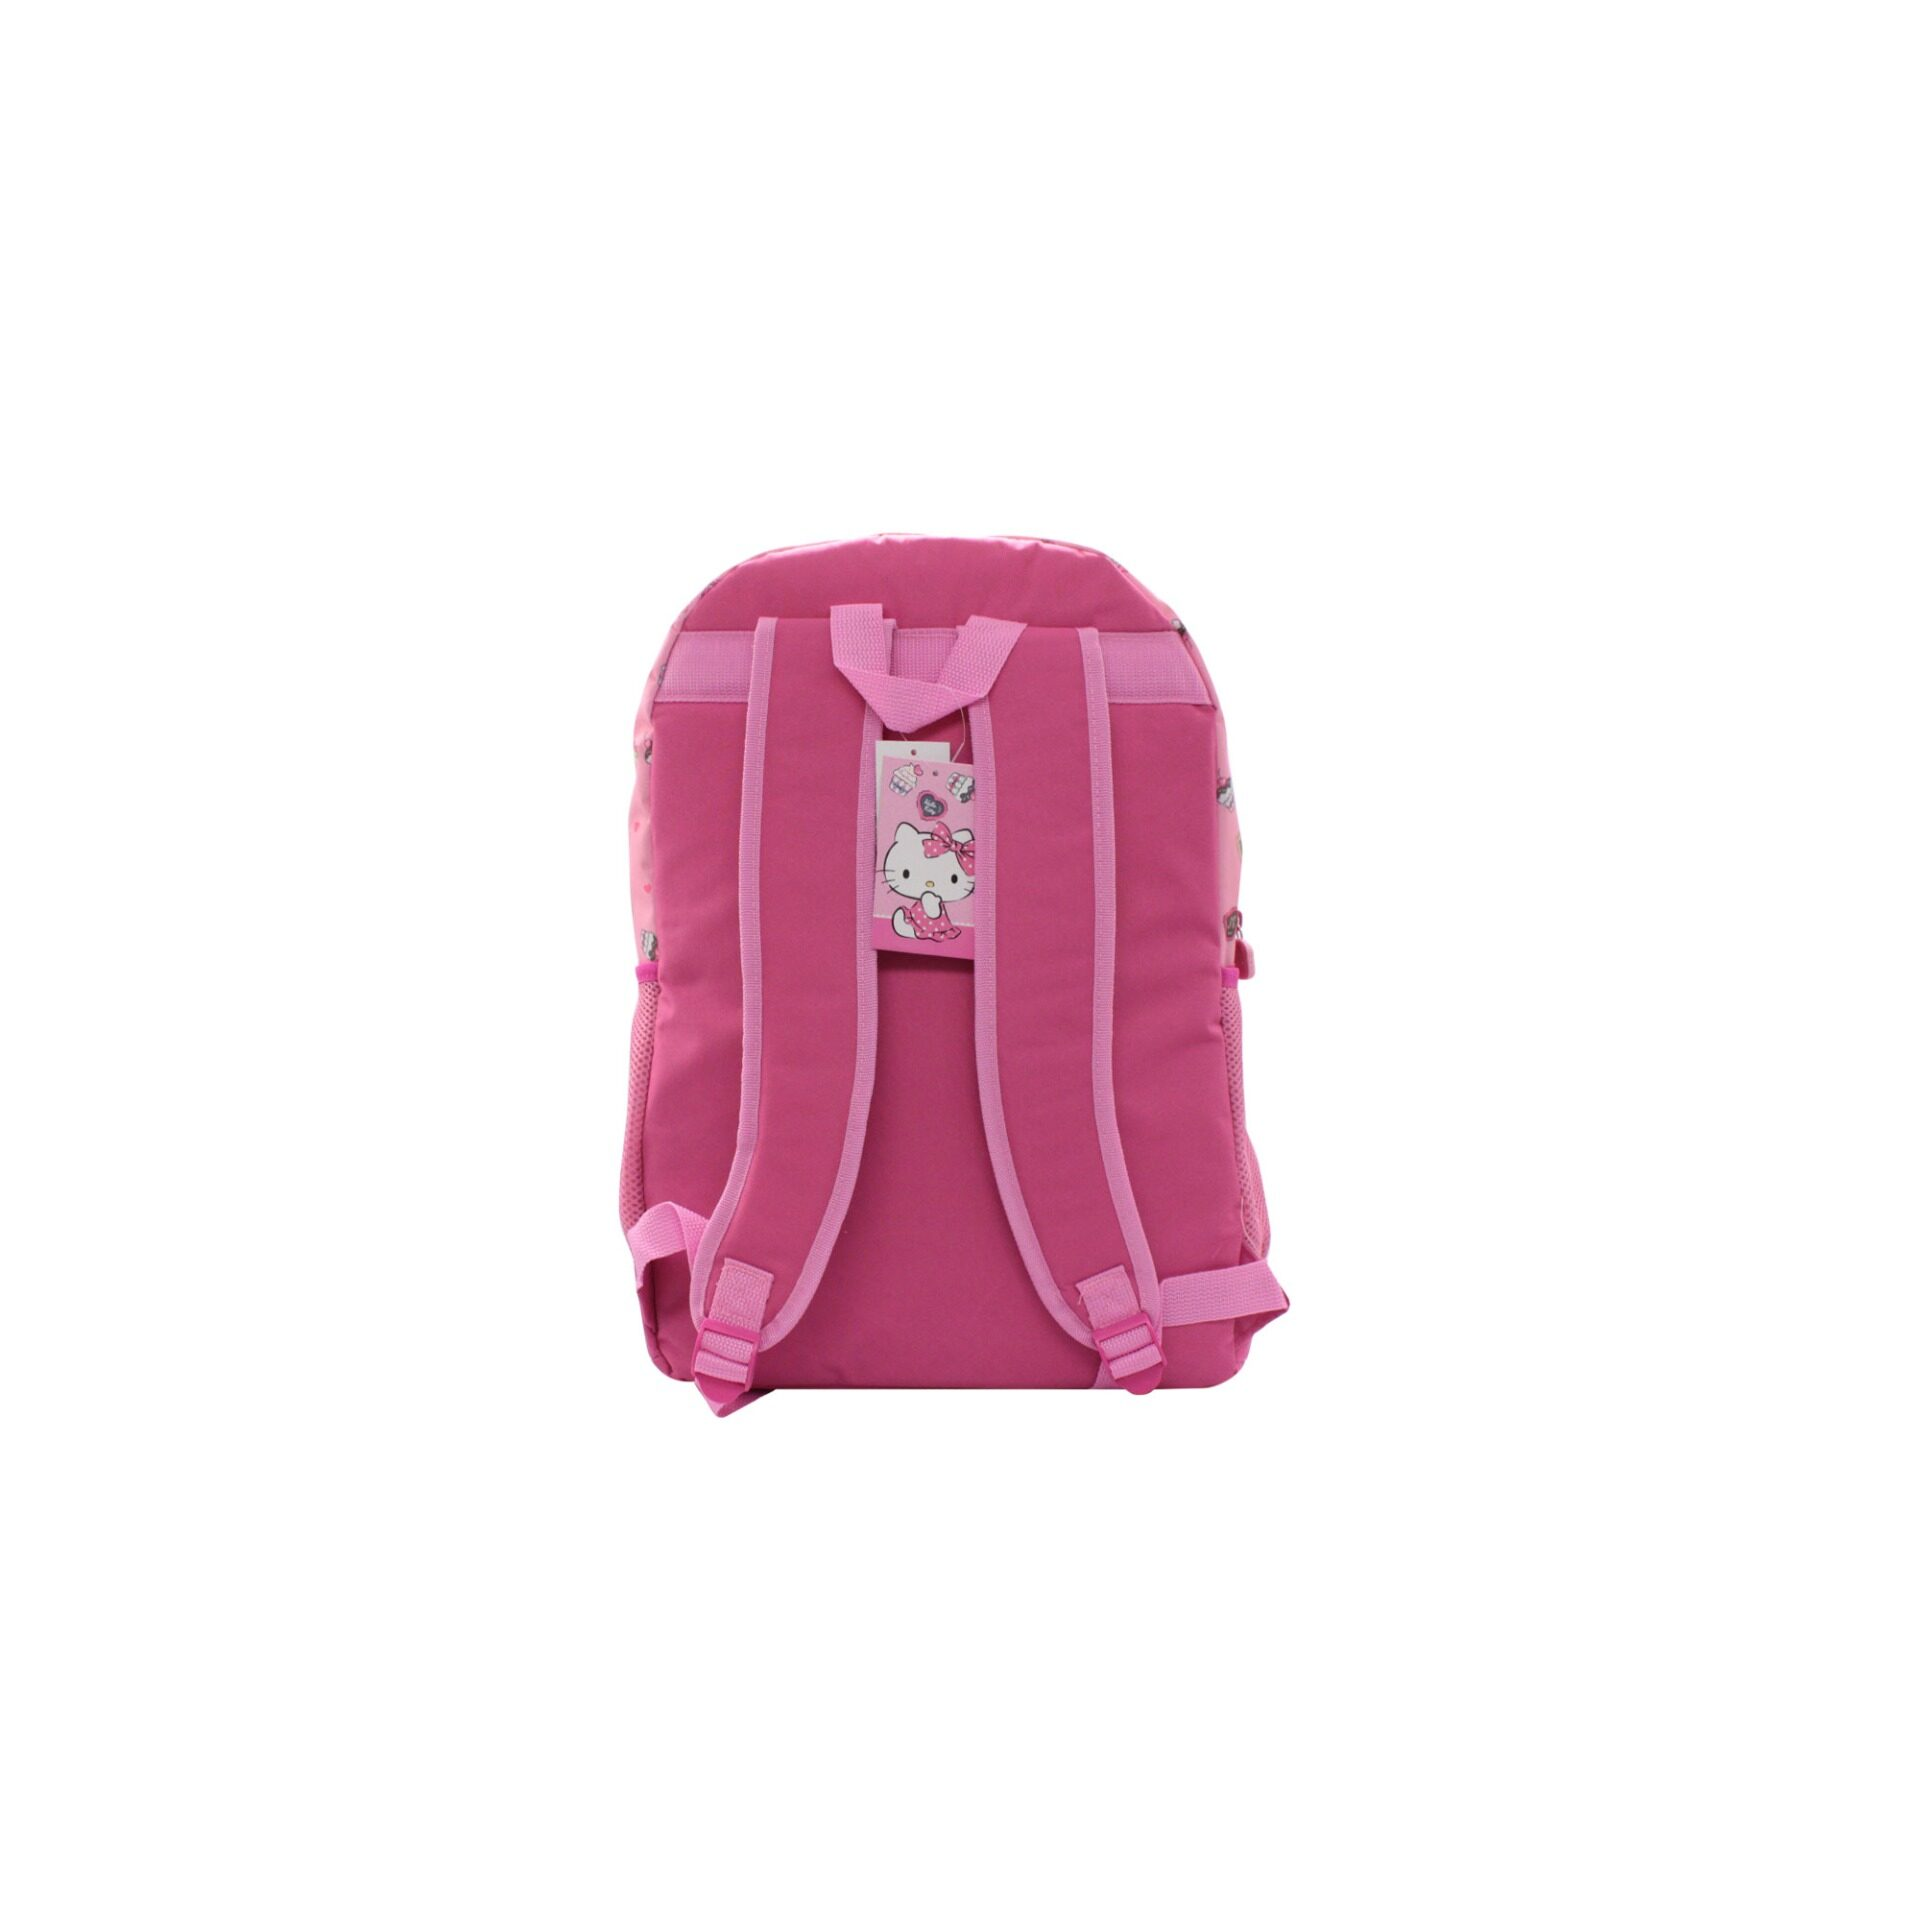 Sanrio Hello Kitty With Dessets Front Pocket Nylon Girls Back To School Backpack (Pink)